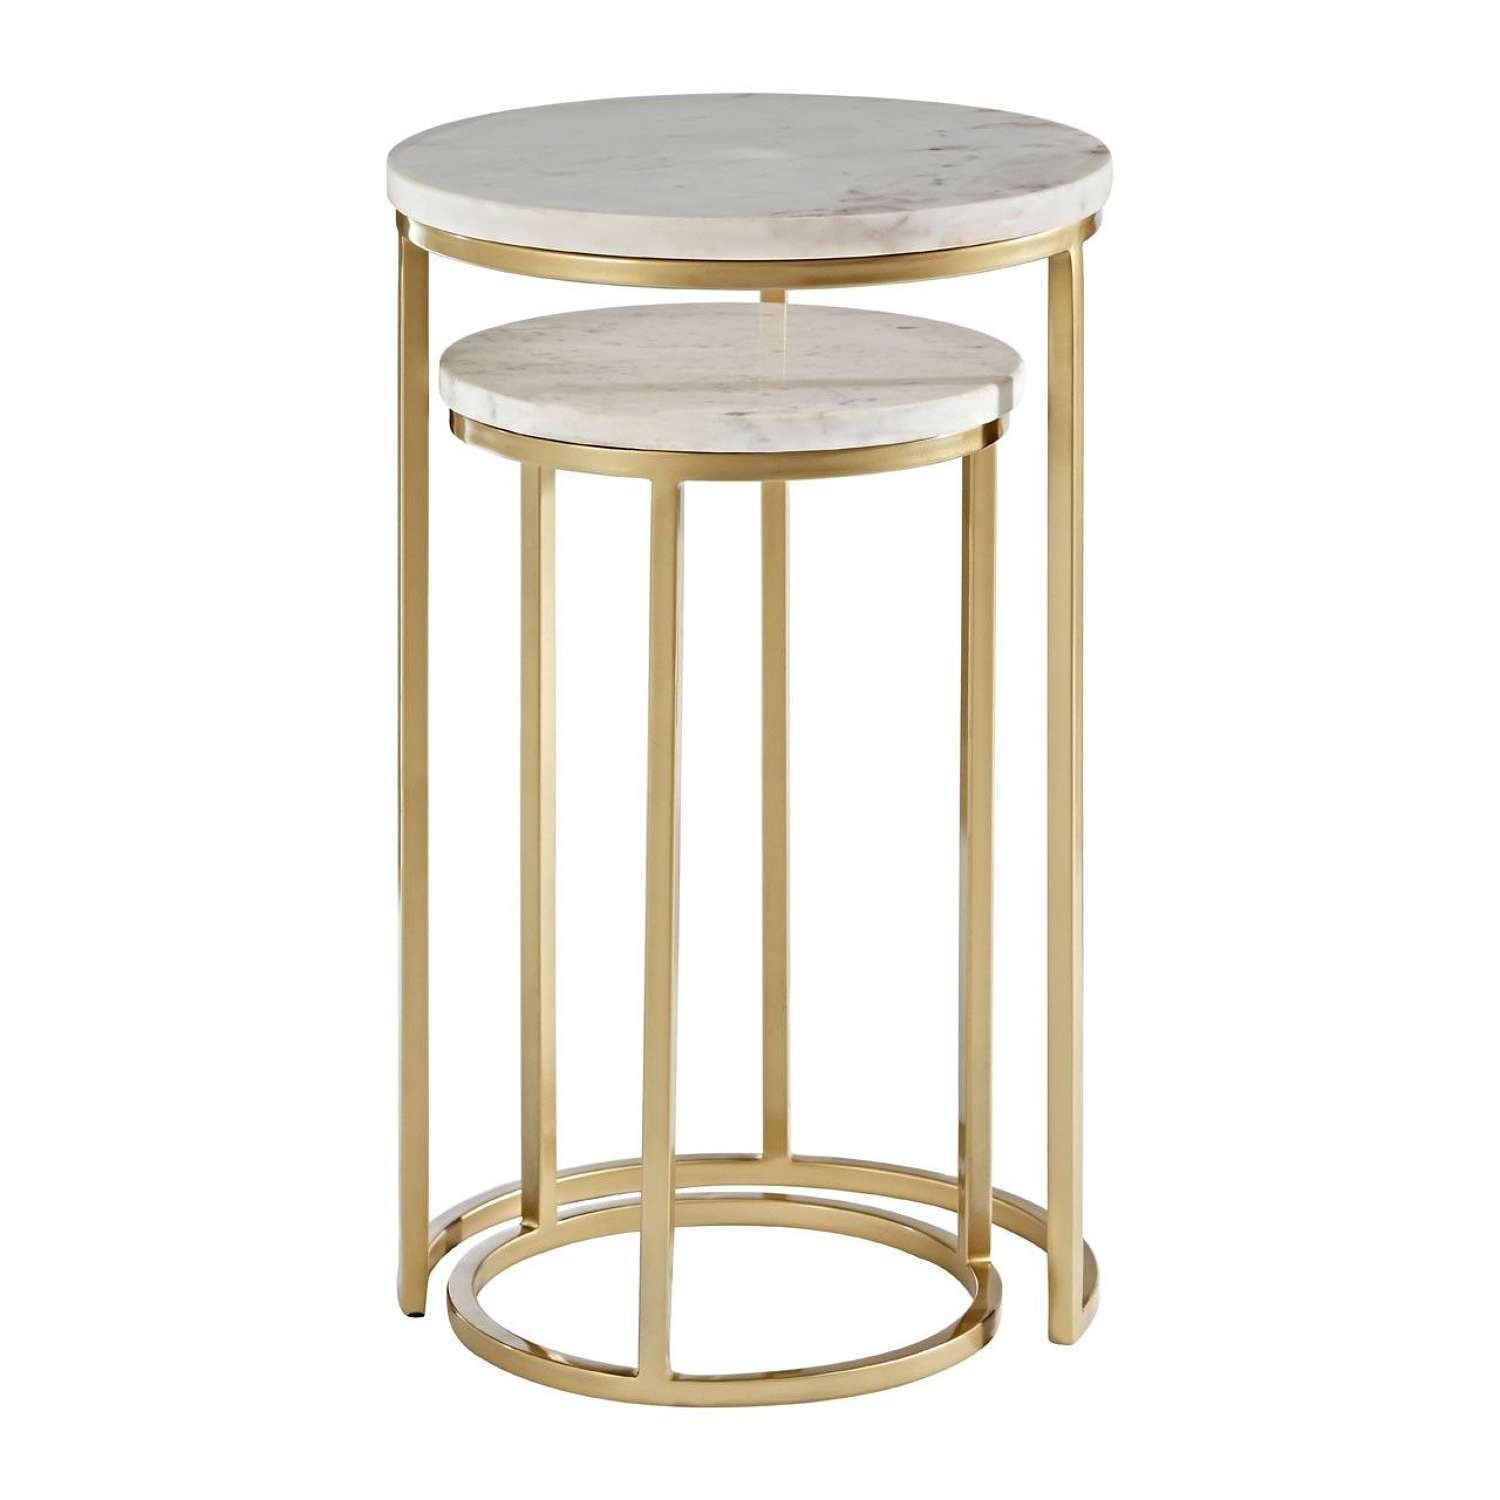 Tall Duo of Gold Nesting Tables with Marble Tops